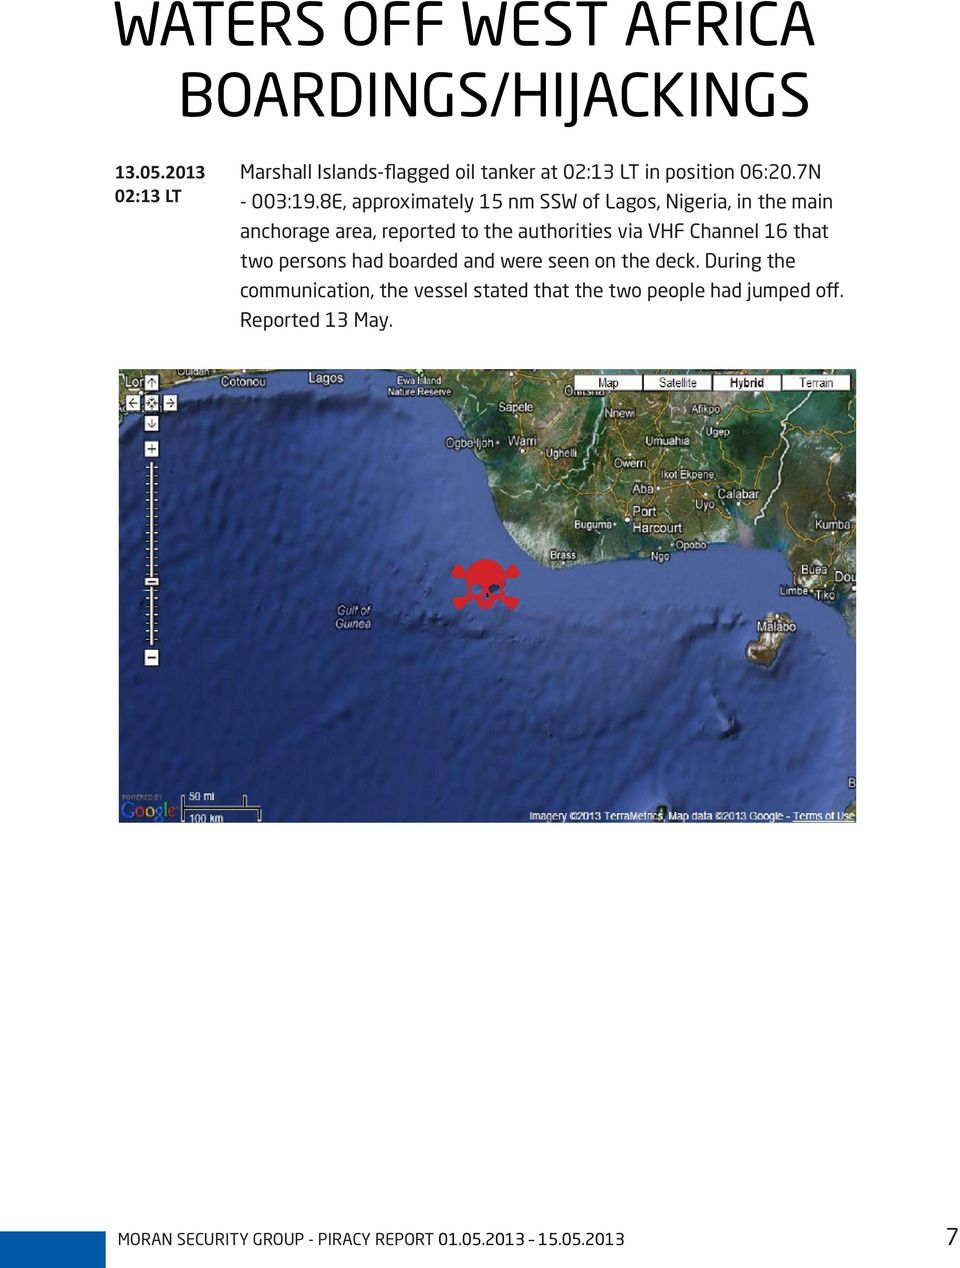 8E, approximately 15 nm SSW of Lagos, Nigeria, in the main anchorage area, reported to the authorities